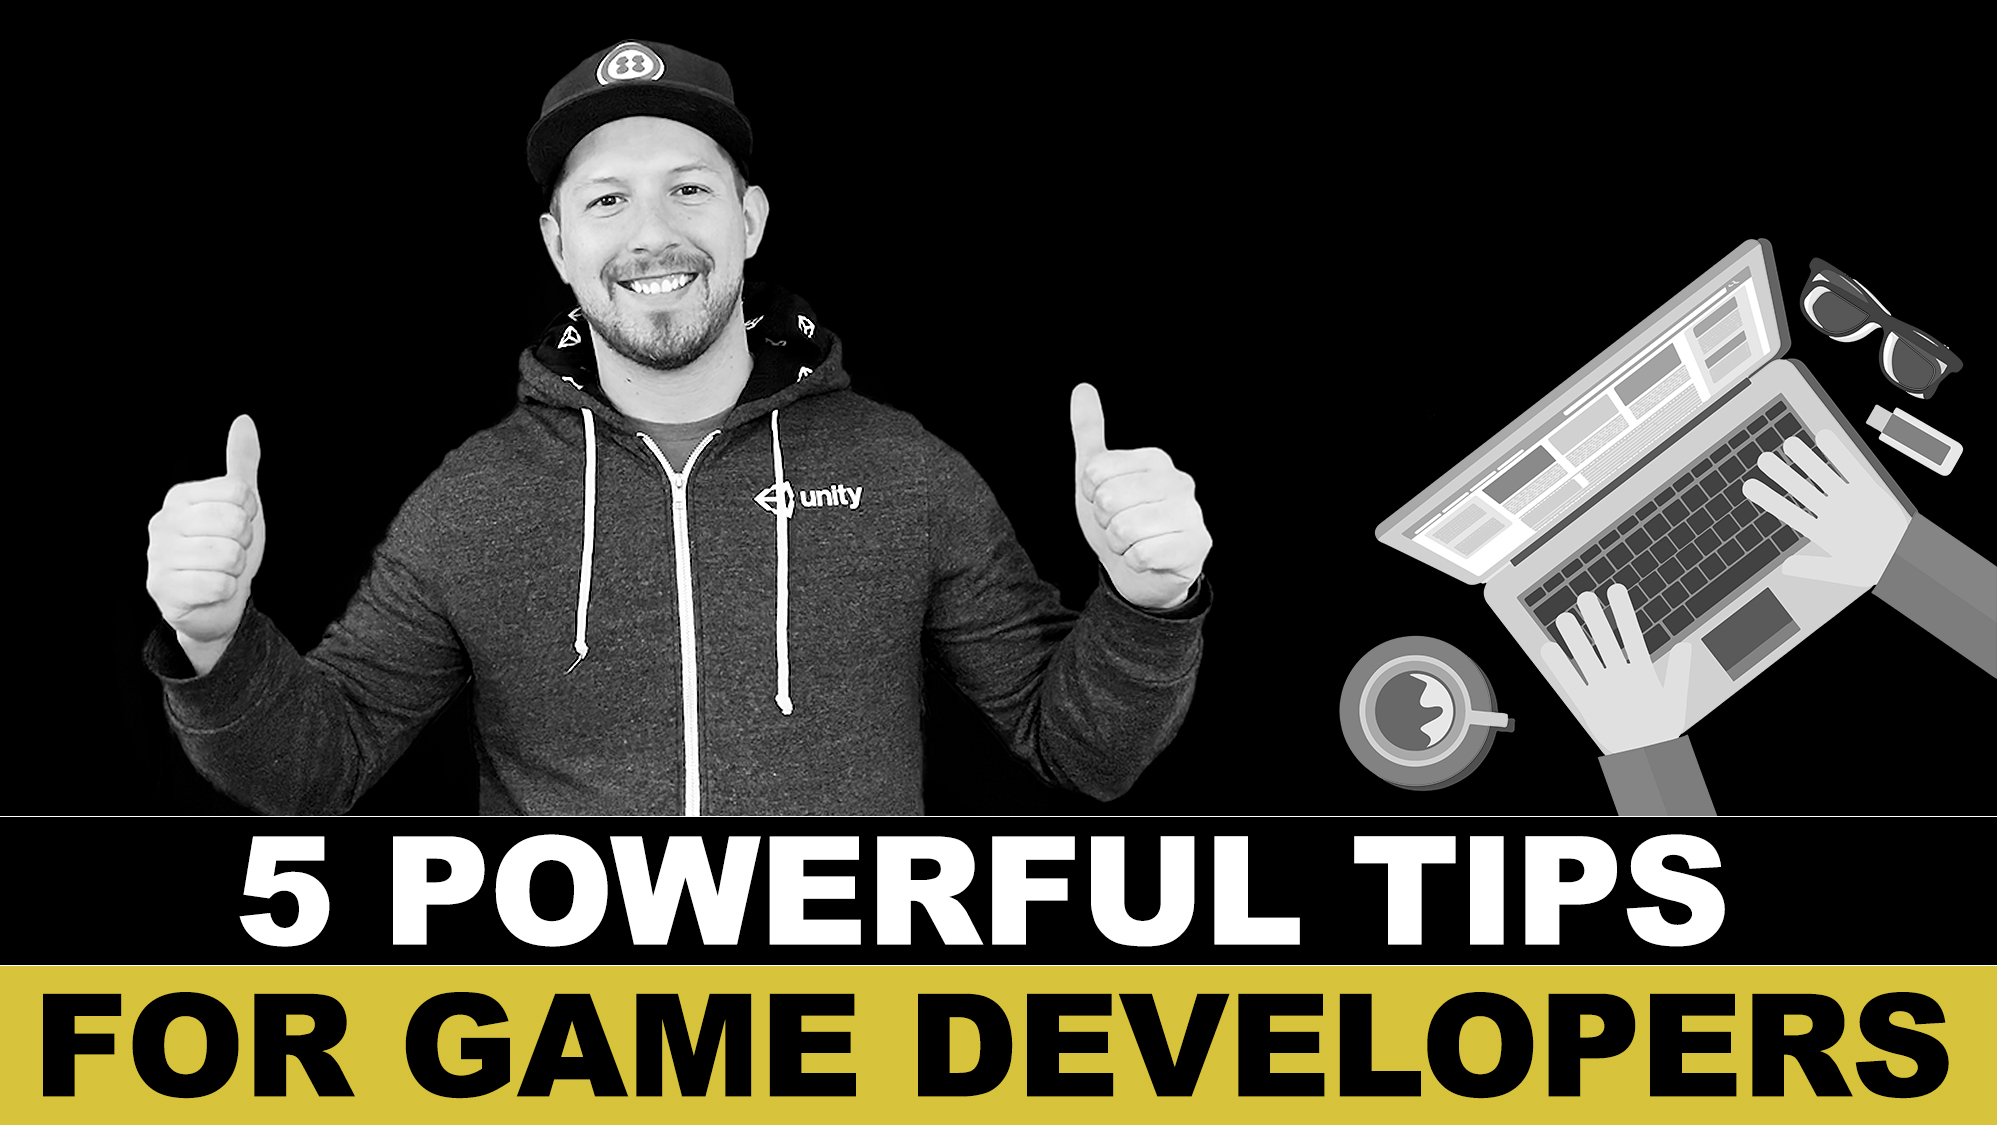 5 Powerful tips for game developers or app developers who seek for improvements in their journey